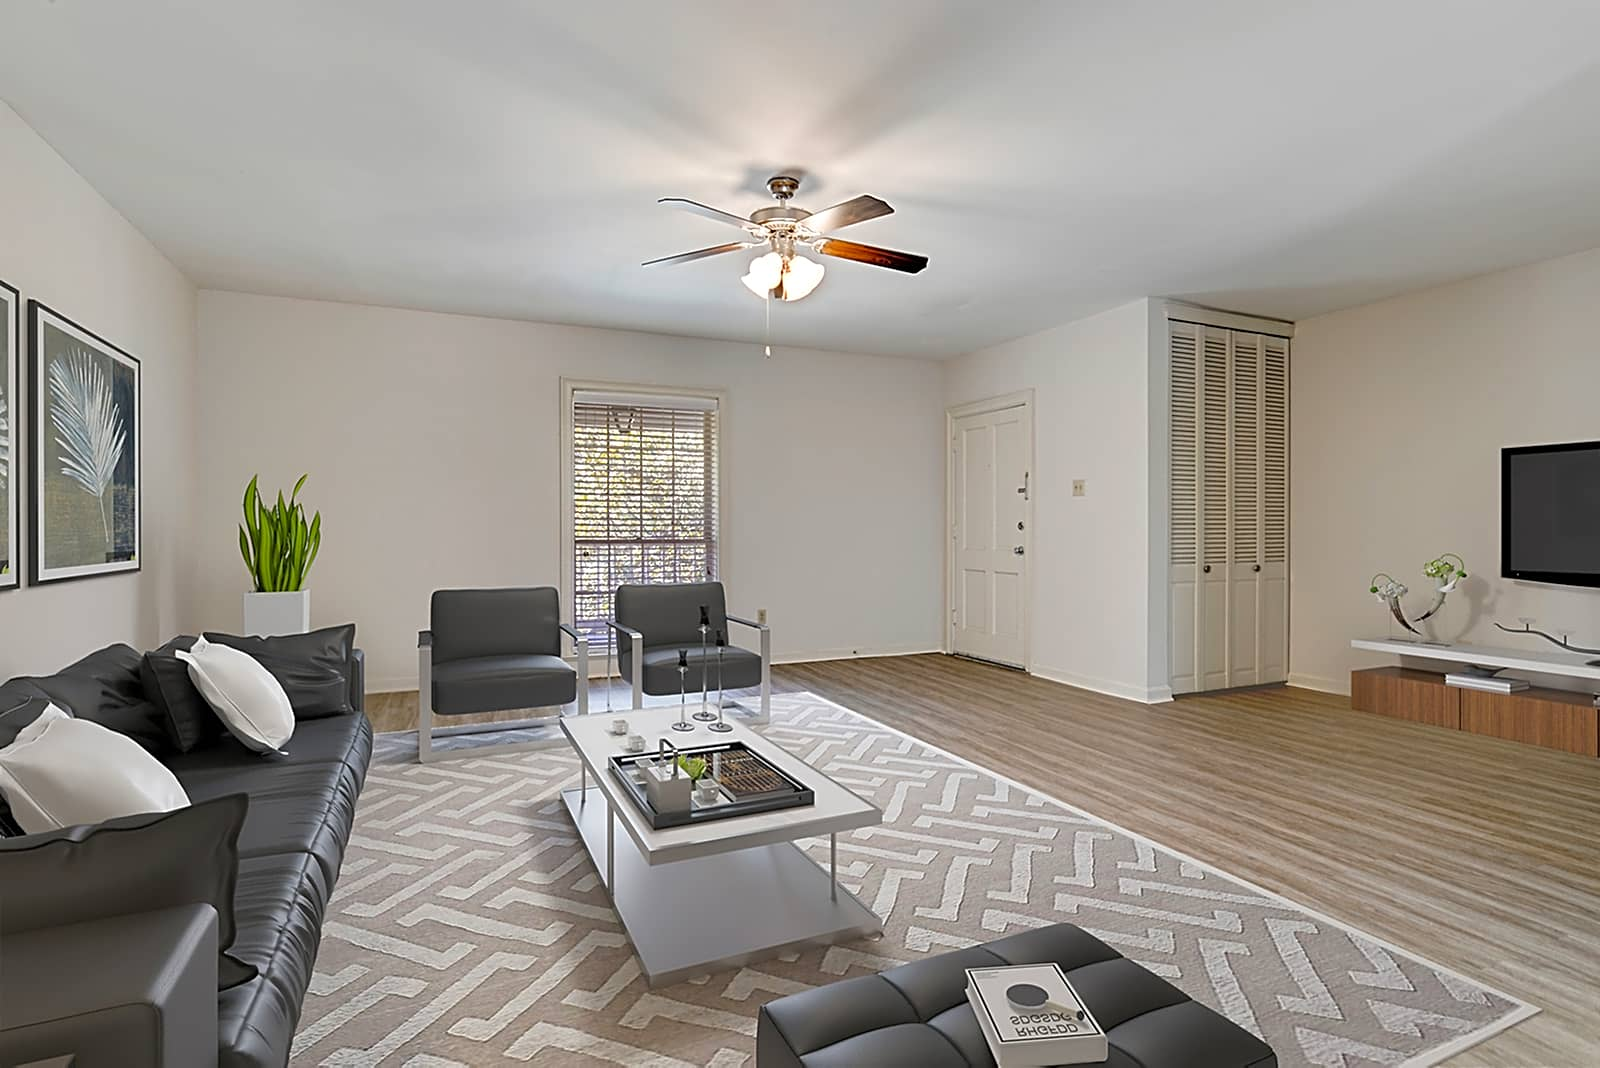 Apartments Near Southern The Patrician for Southern University and A & M College Students in Baton Rouge, LA